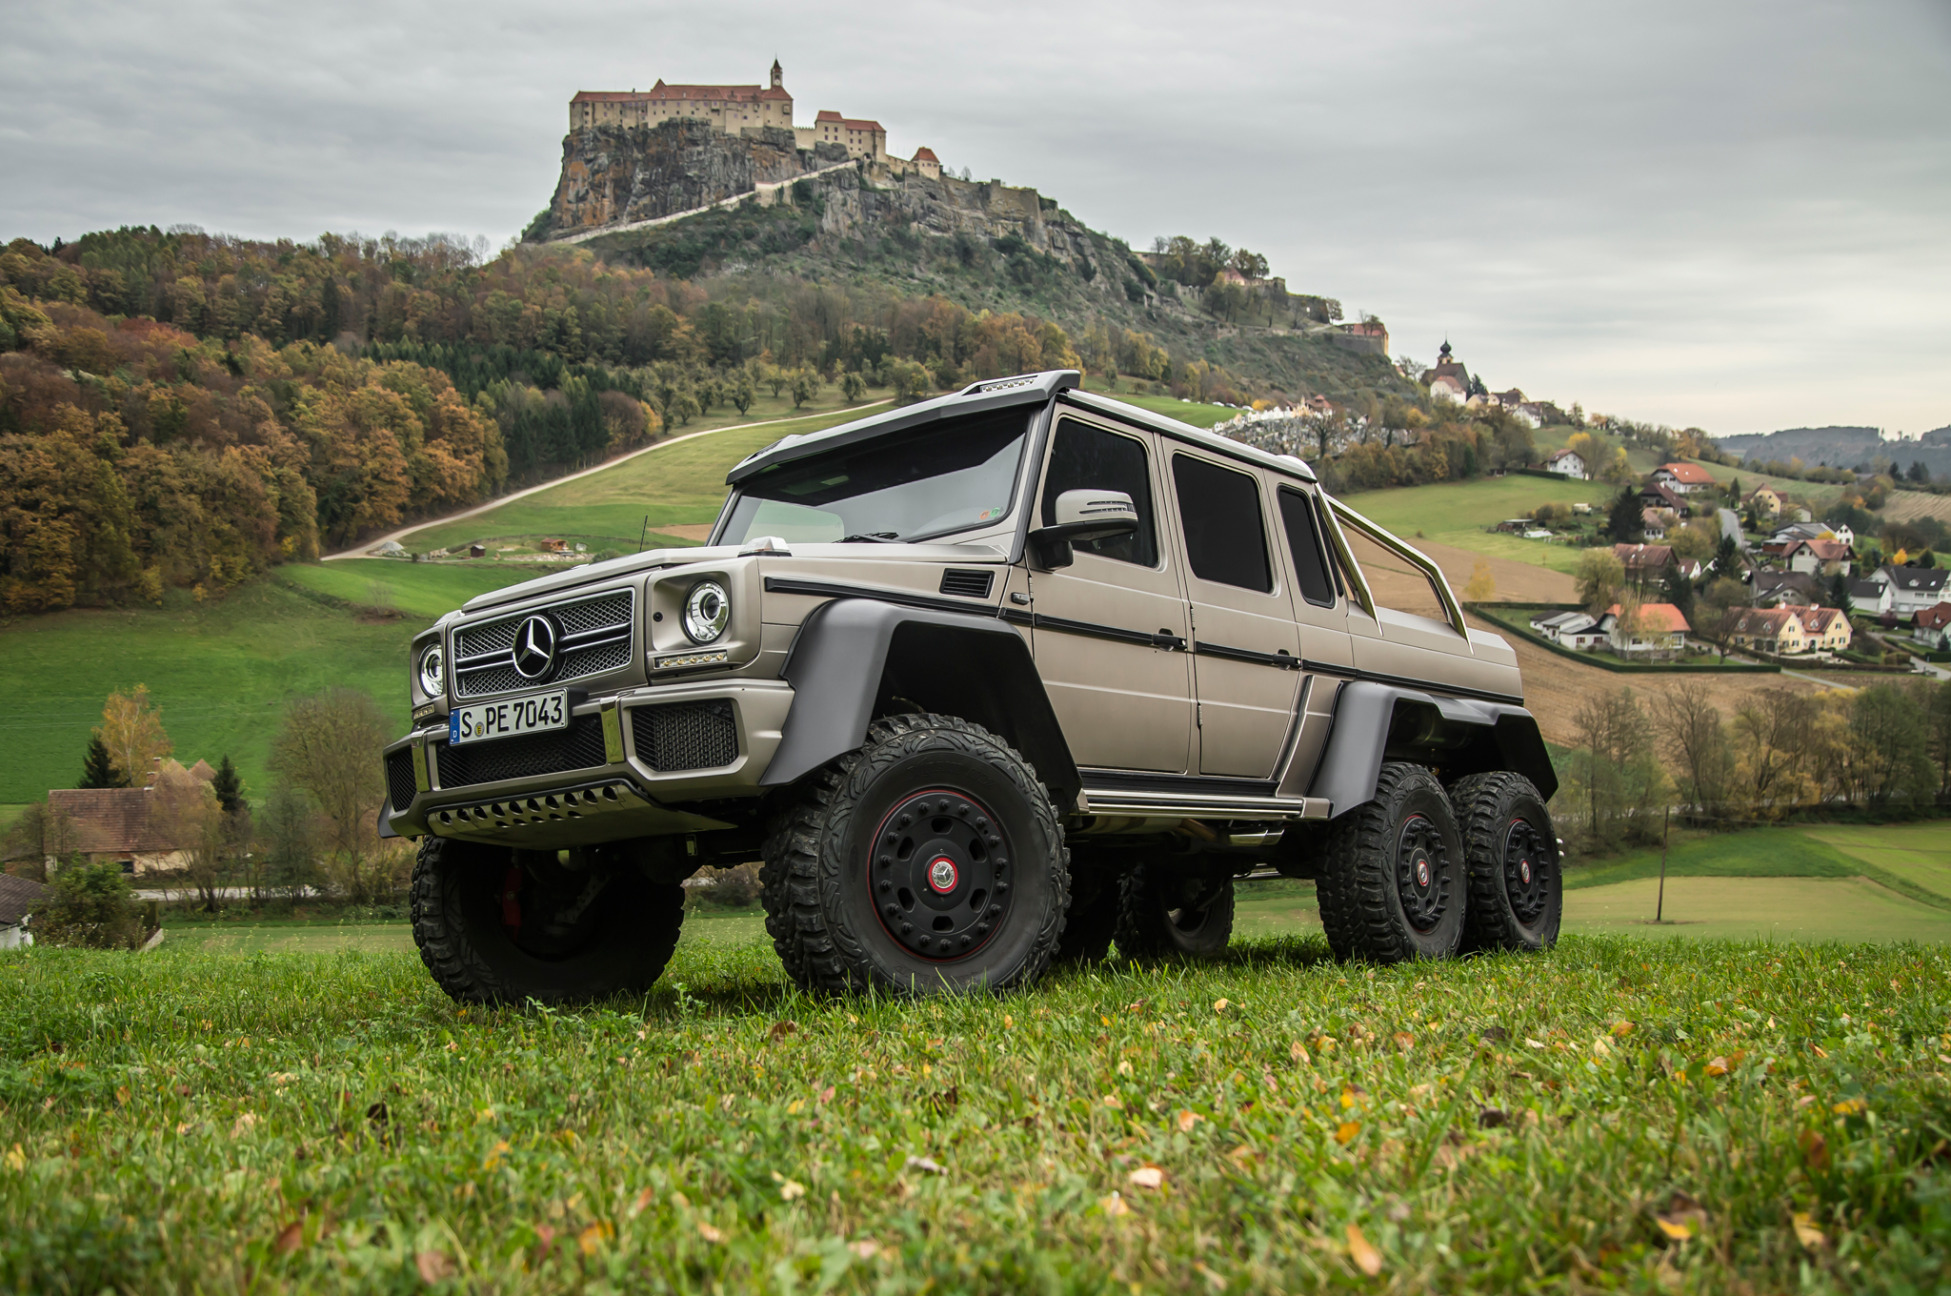 Mercedes benz 6x6 g63 amg el todoterreno mas brutal for Mercedes benz g63 6x6 amg